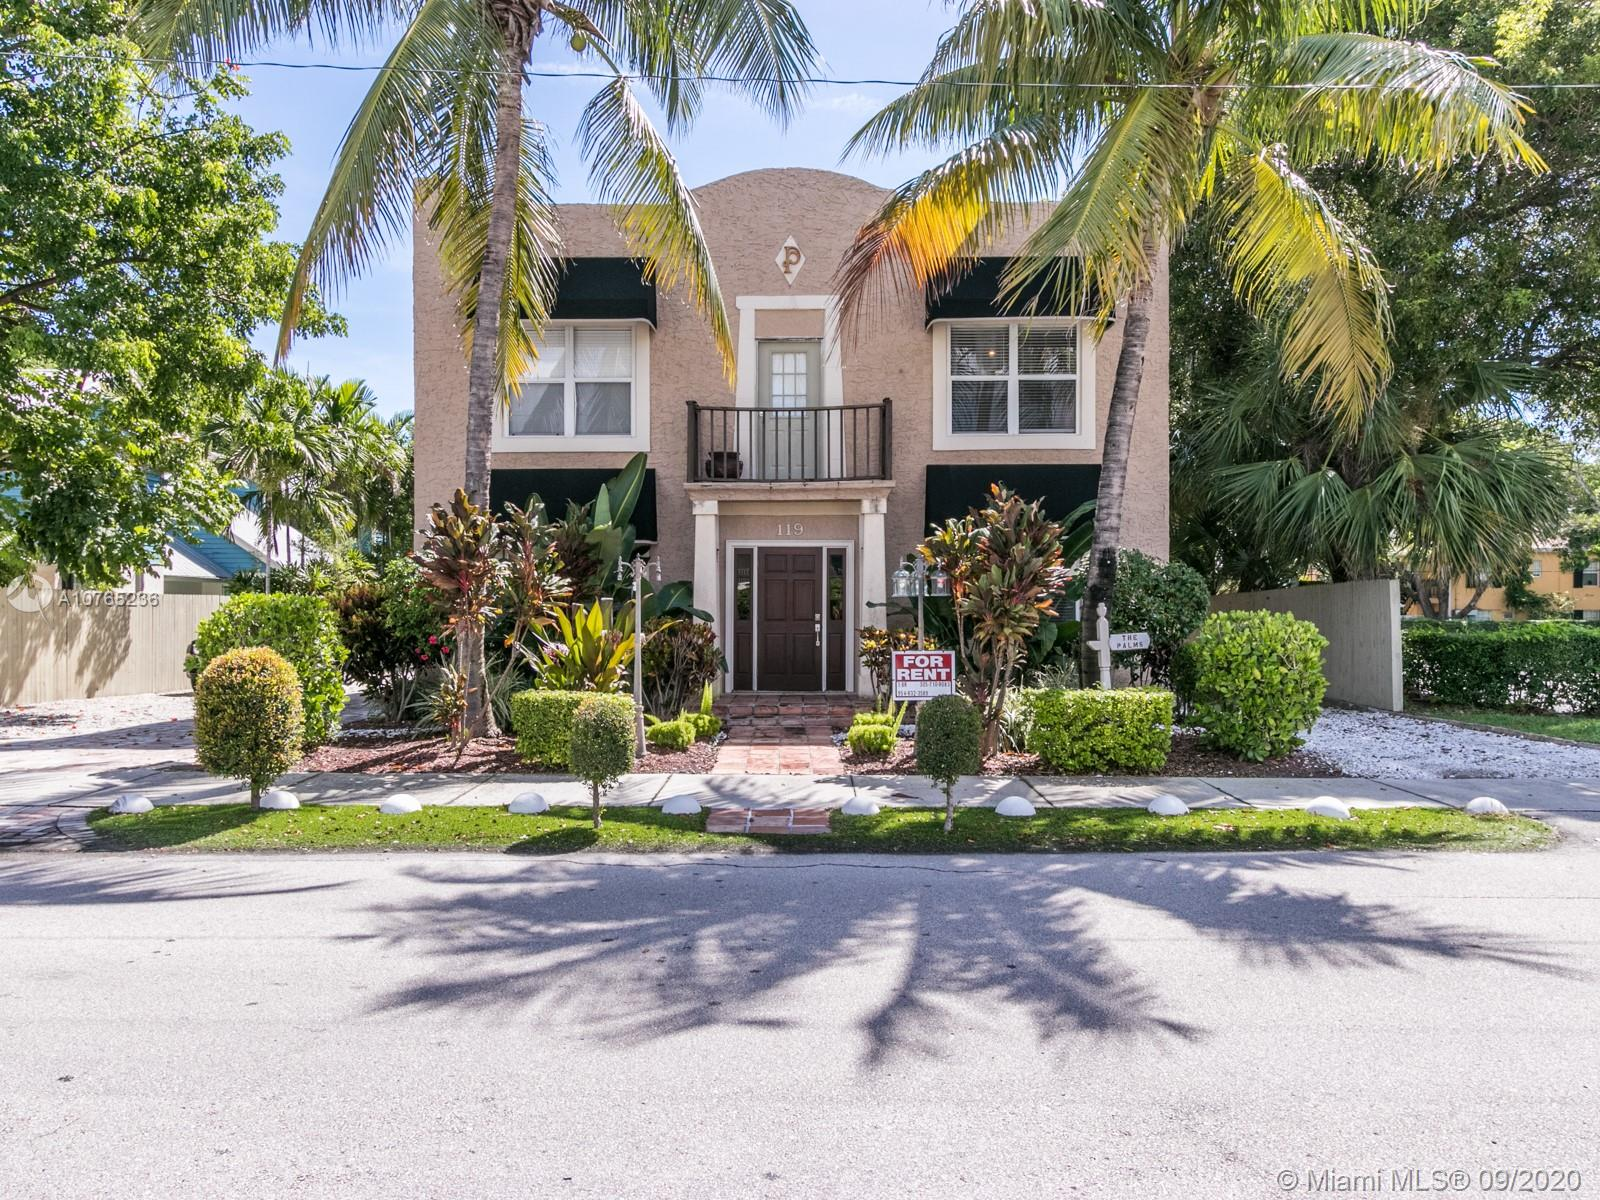 119 NE 7th Ave 6, Delray Beach, FL 33483